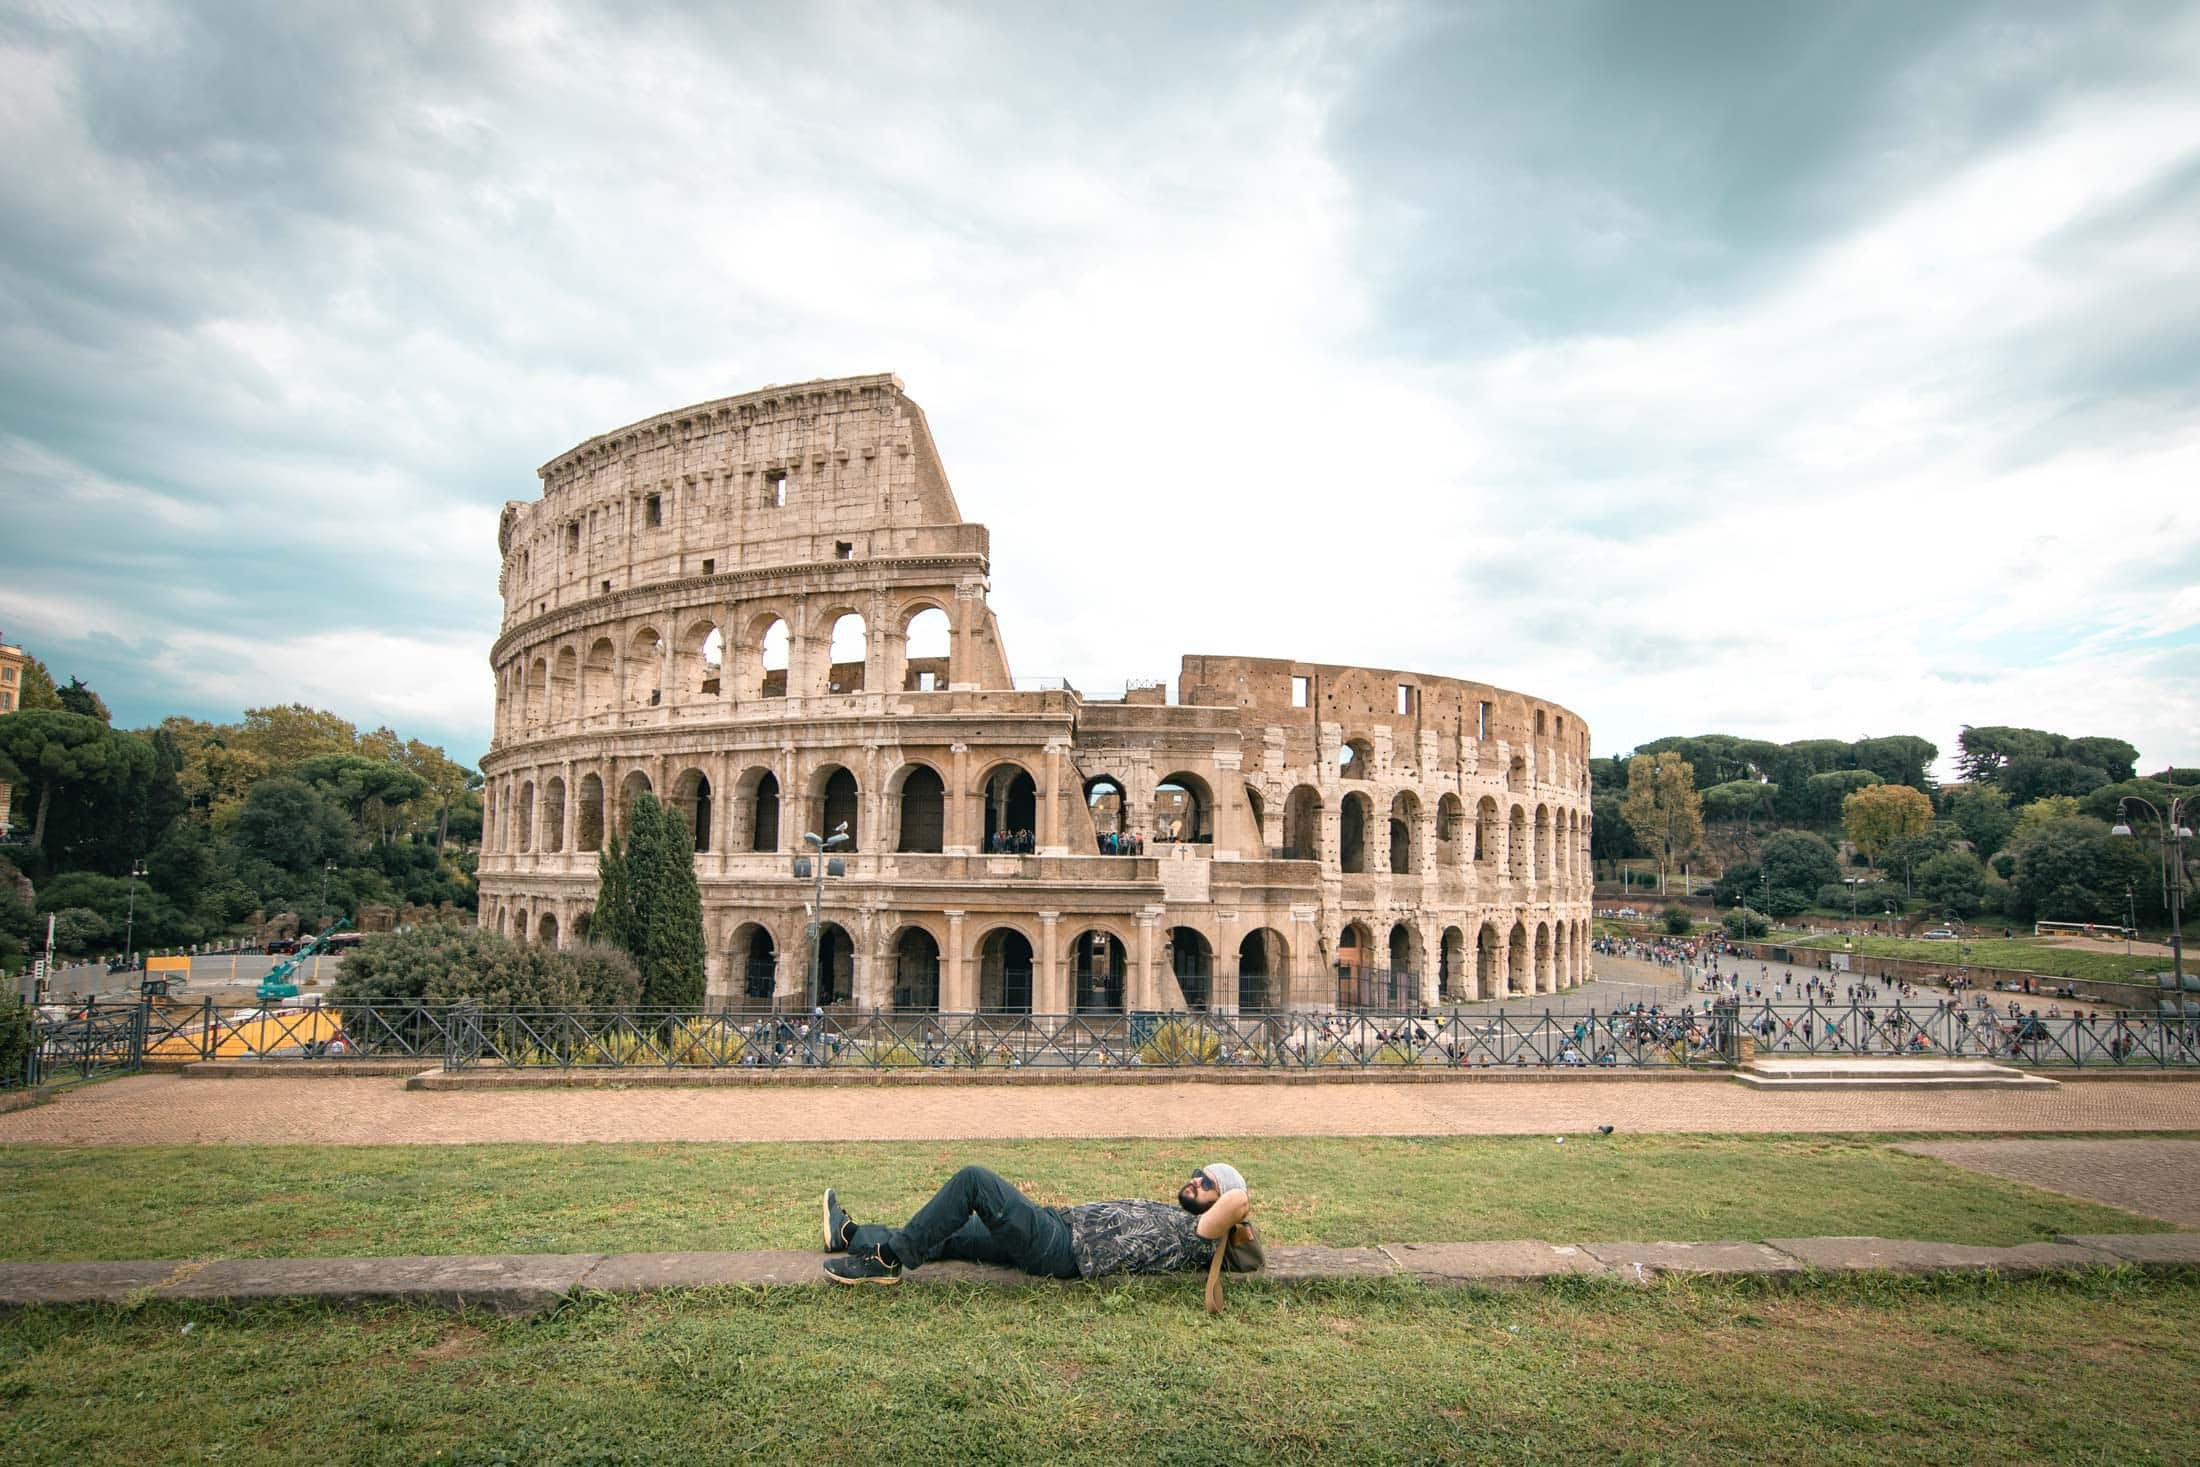 globalcastaway lying in front of the colosseum